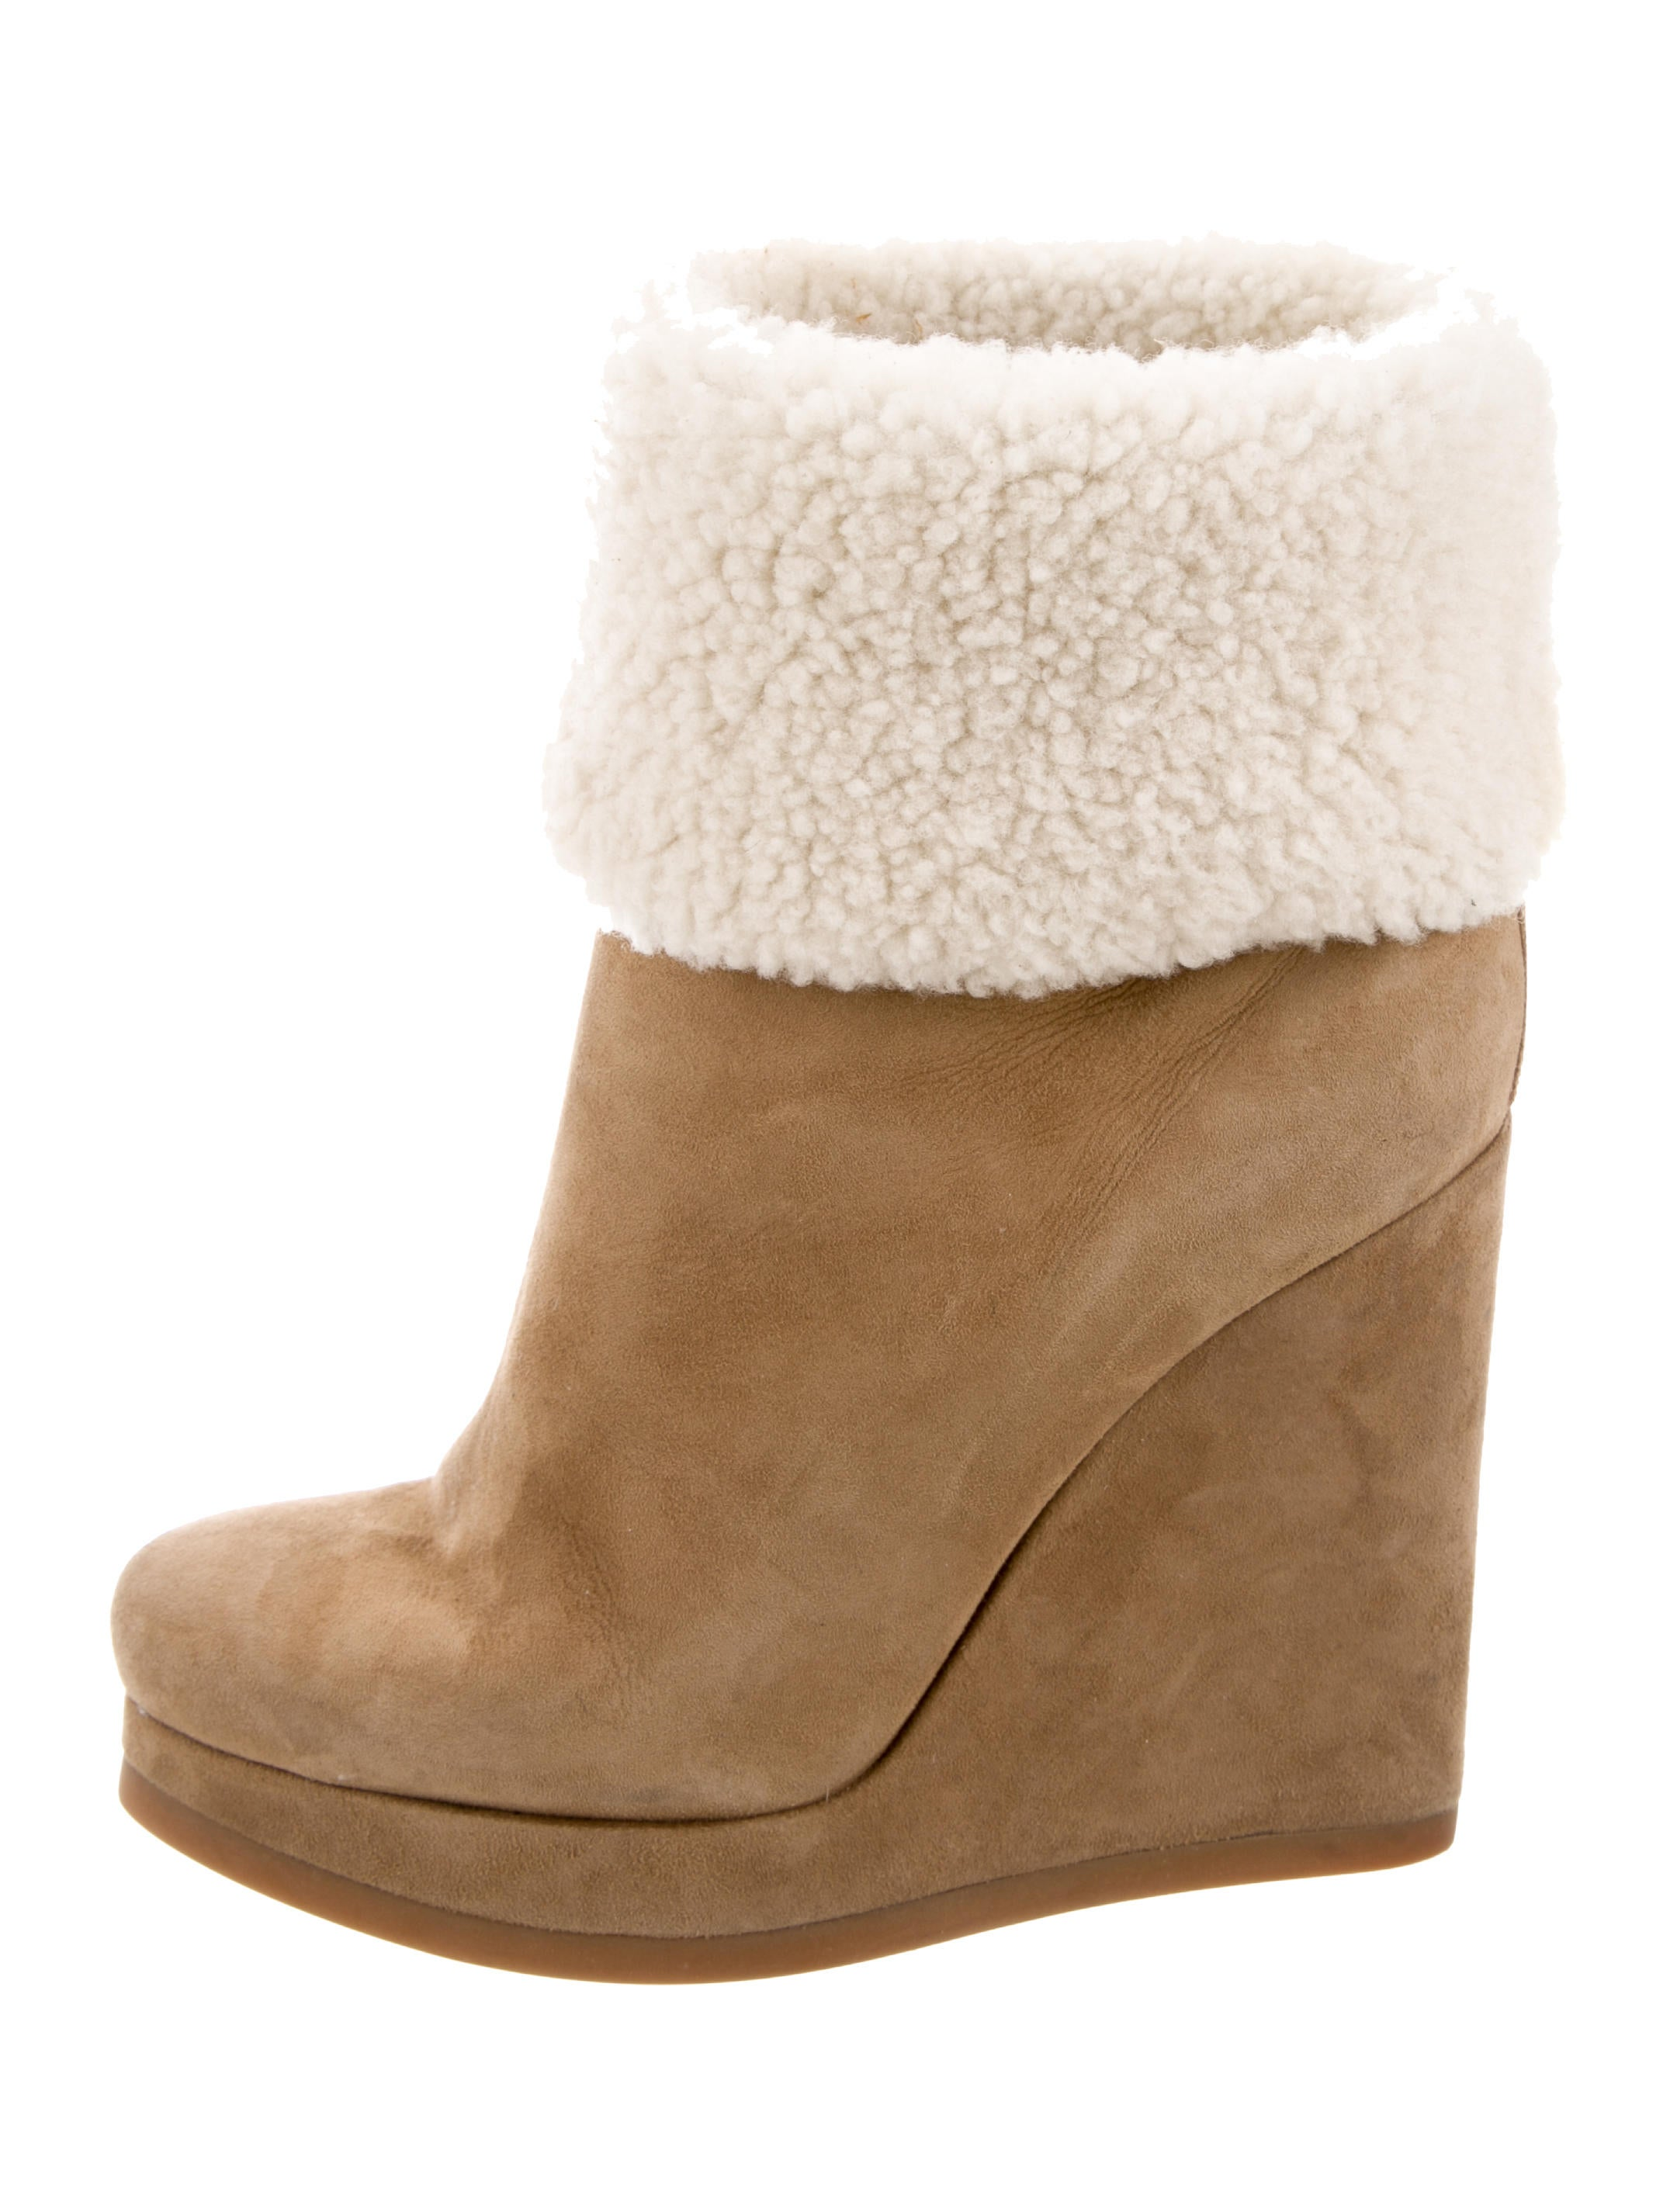 Jil Sander Shearling-Trimmed Wedge Ankle Boots cheap for sale low price fee shipping cheap price store discount pay with paypal cheap sale fashionable 6gqYRQoeB